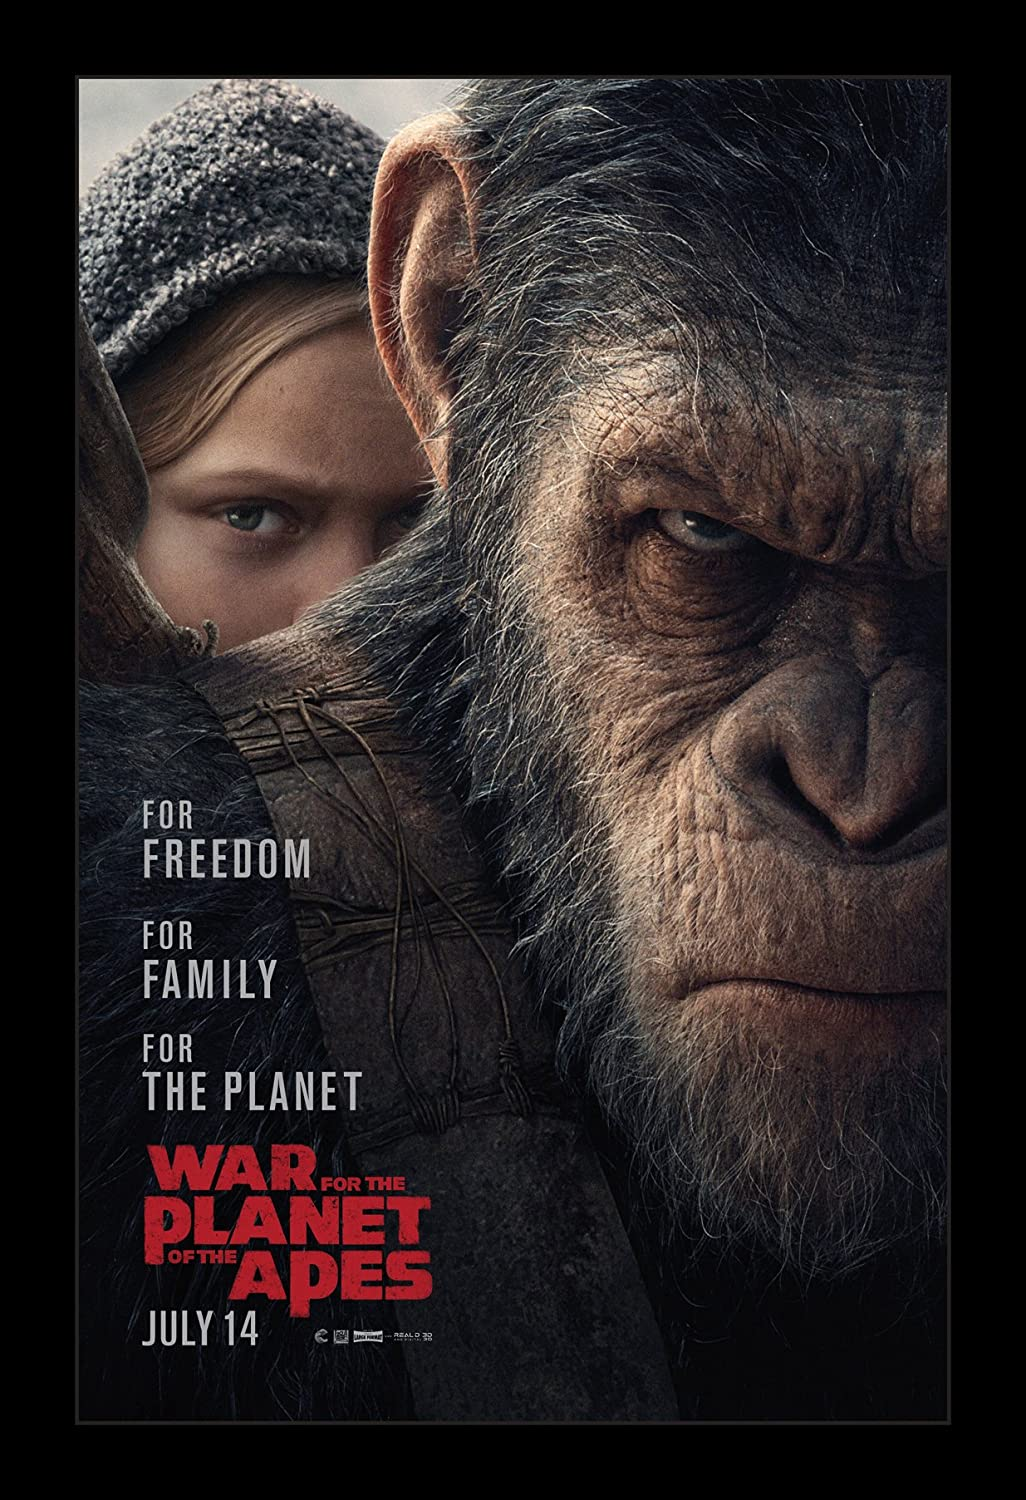 War For The Planet OF The Apes - 11x17 Framed Movie Poster by Wallspace